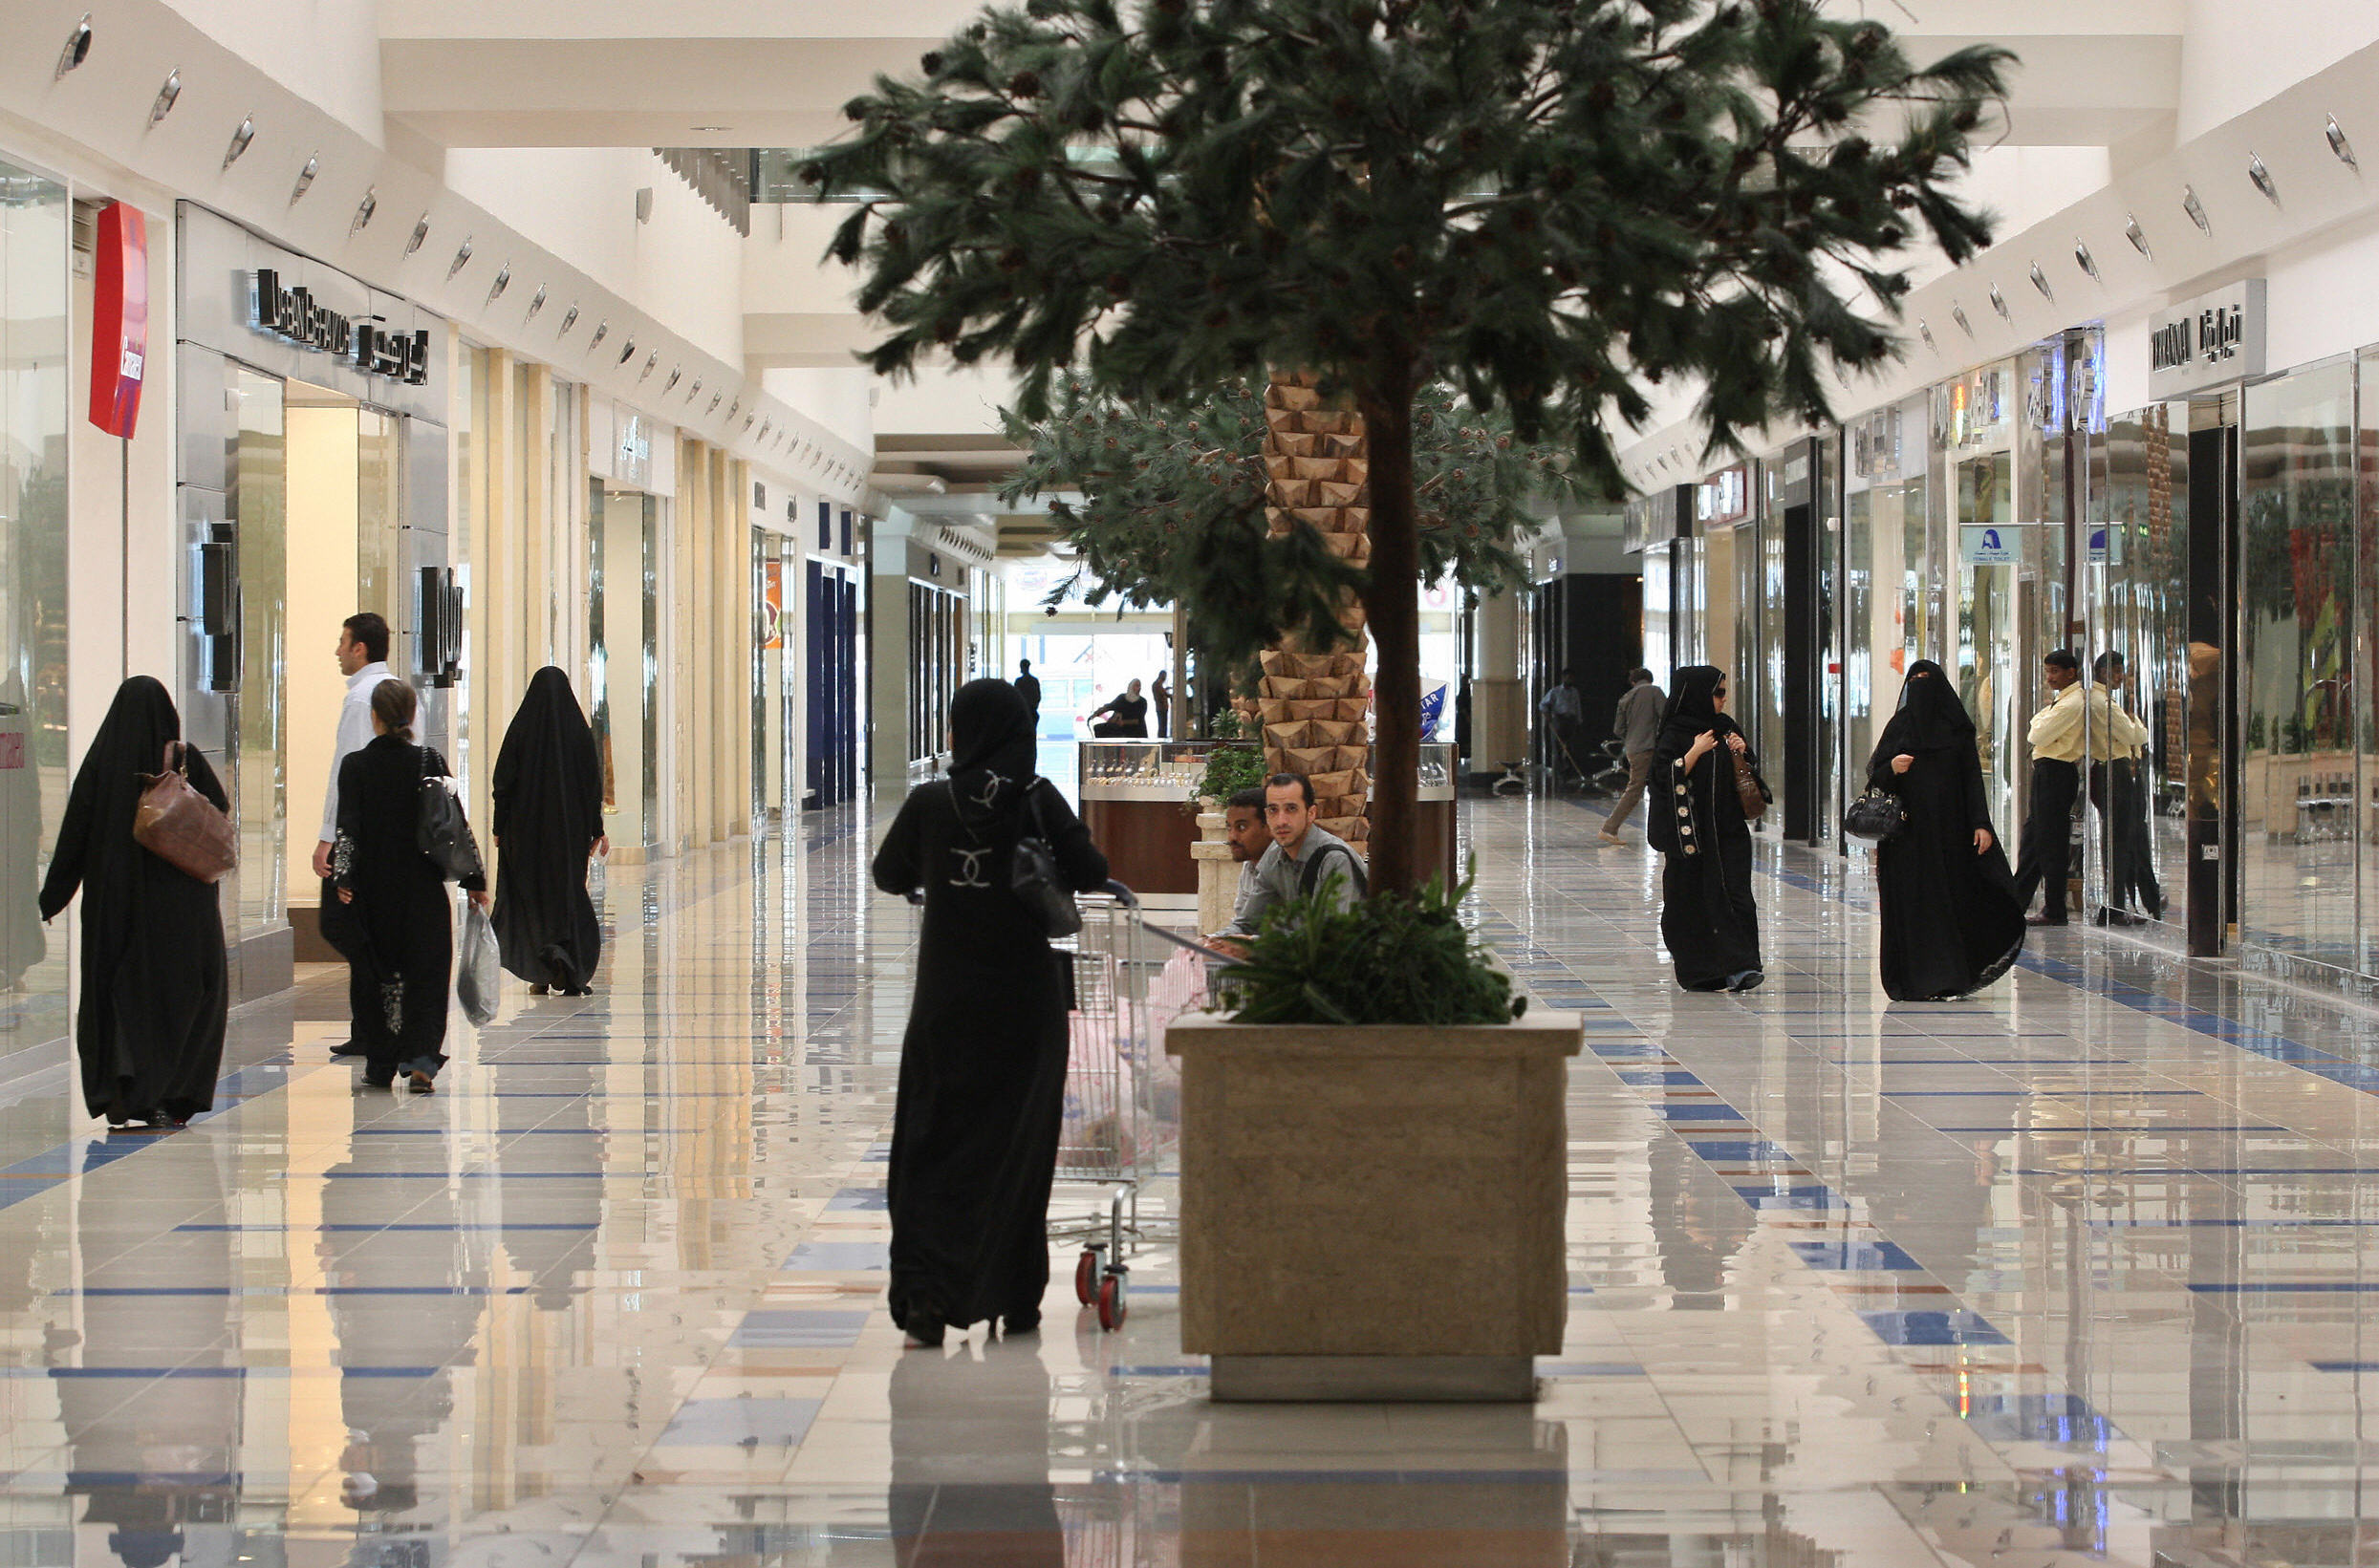 Saudi women walk at a shopping mall in the Saudi capital of Riyadh